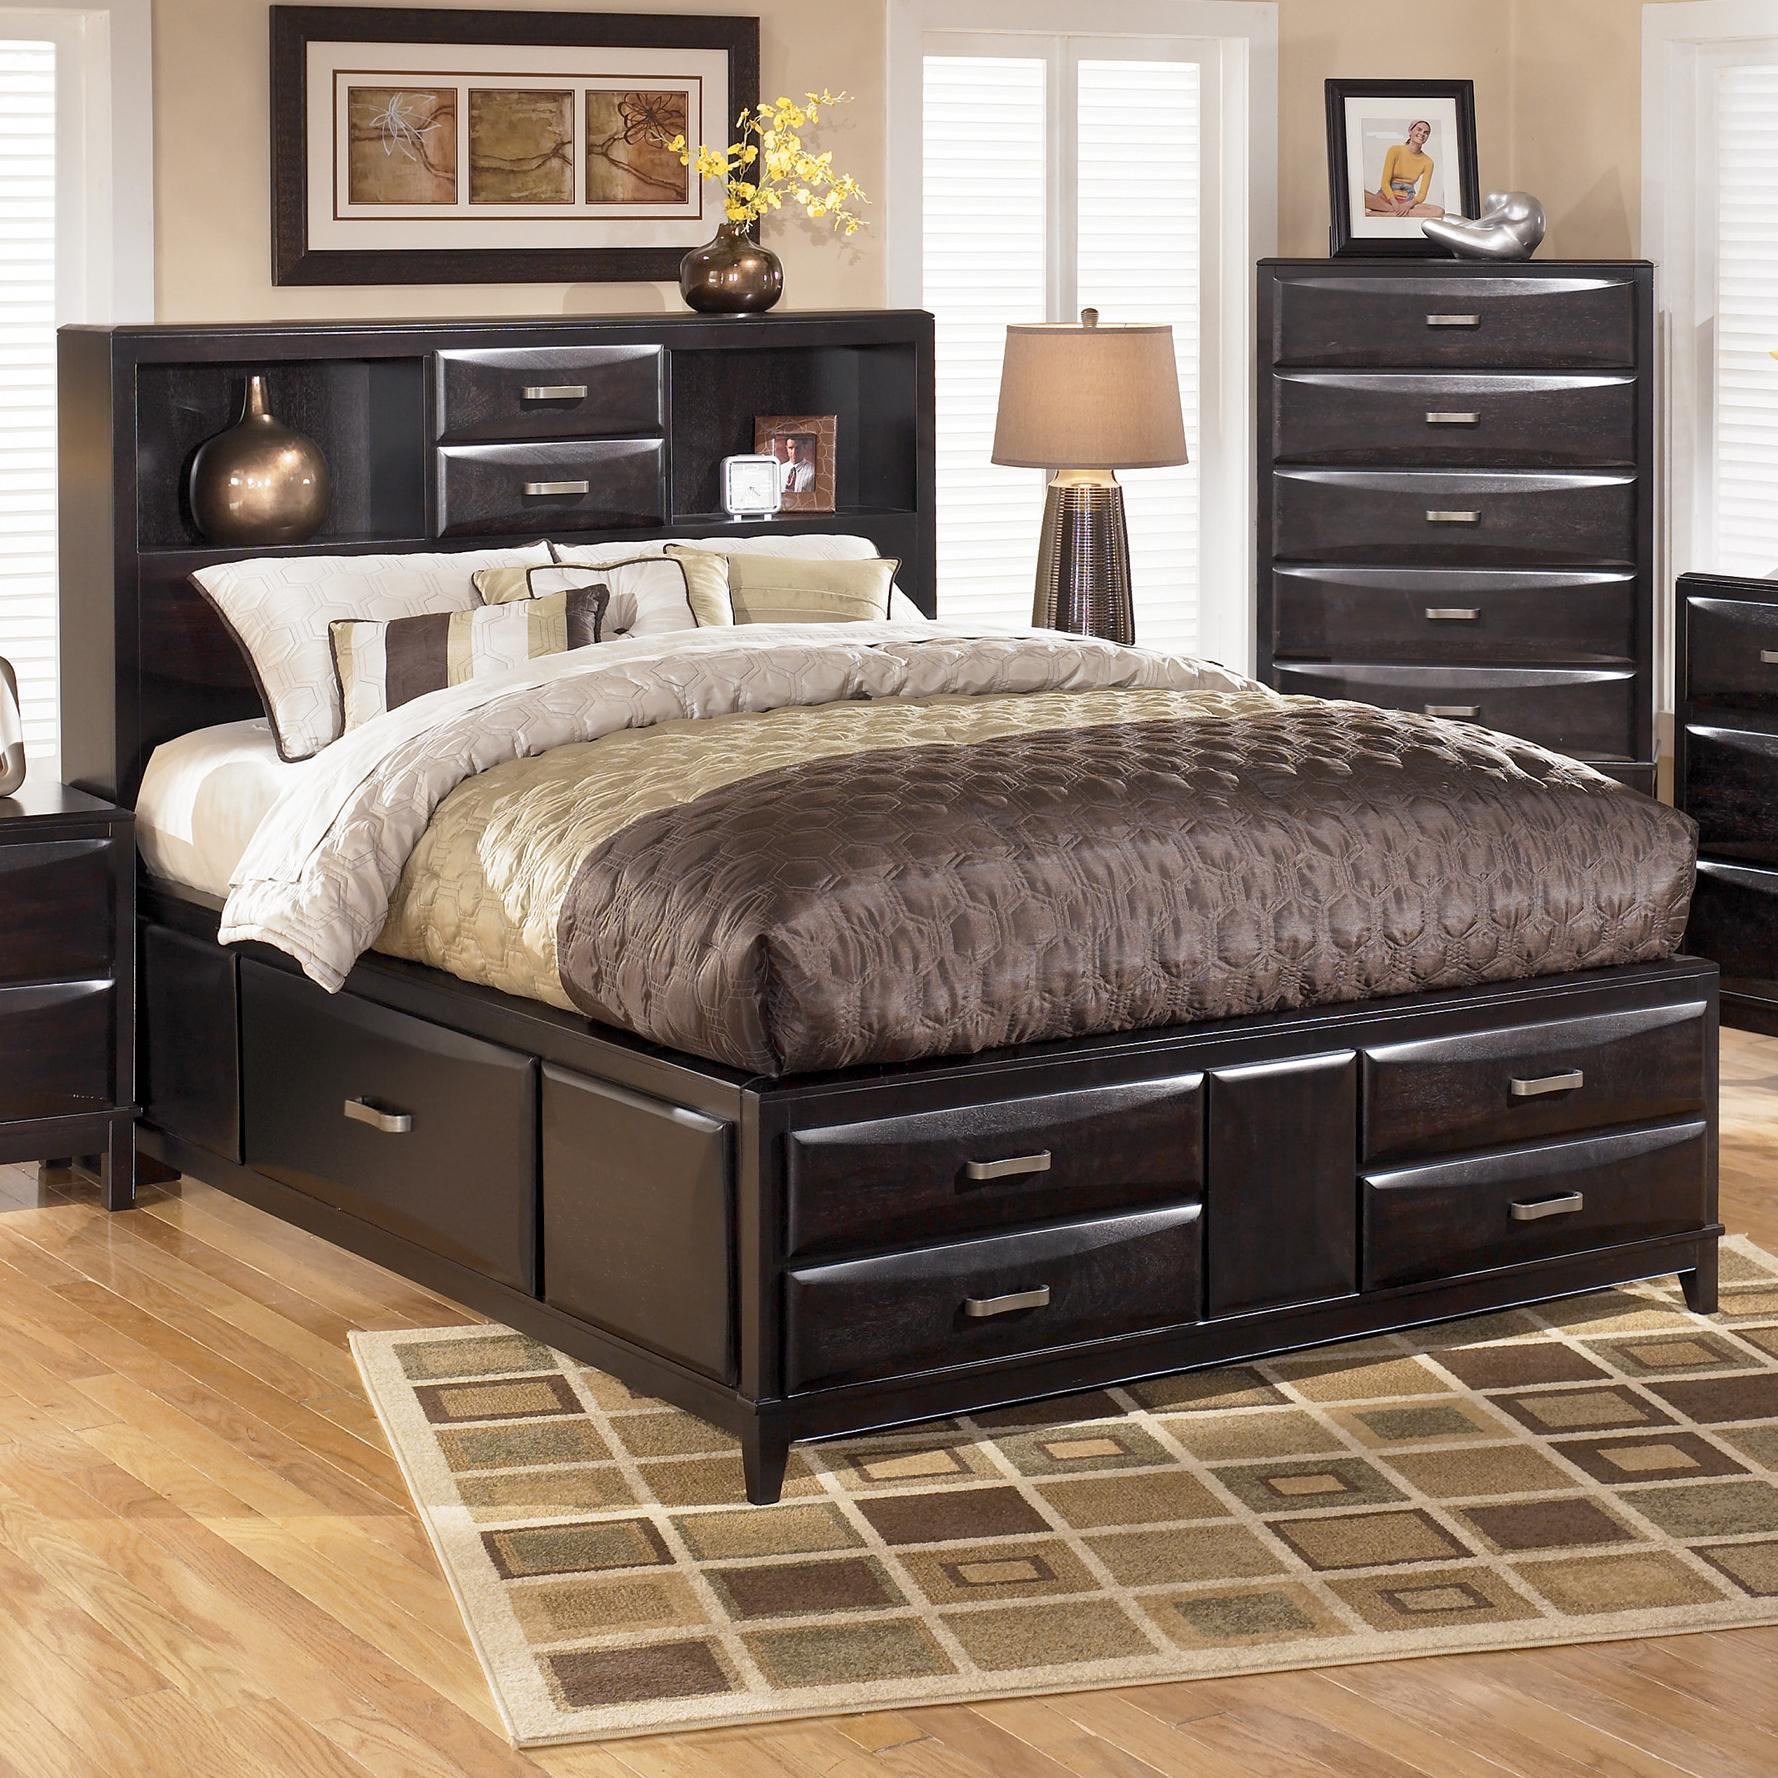 Ashley Furniture Kira Queen Storage Bed   AHFA   Captainu0027s Bed Dealer  Locator